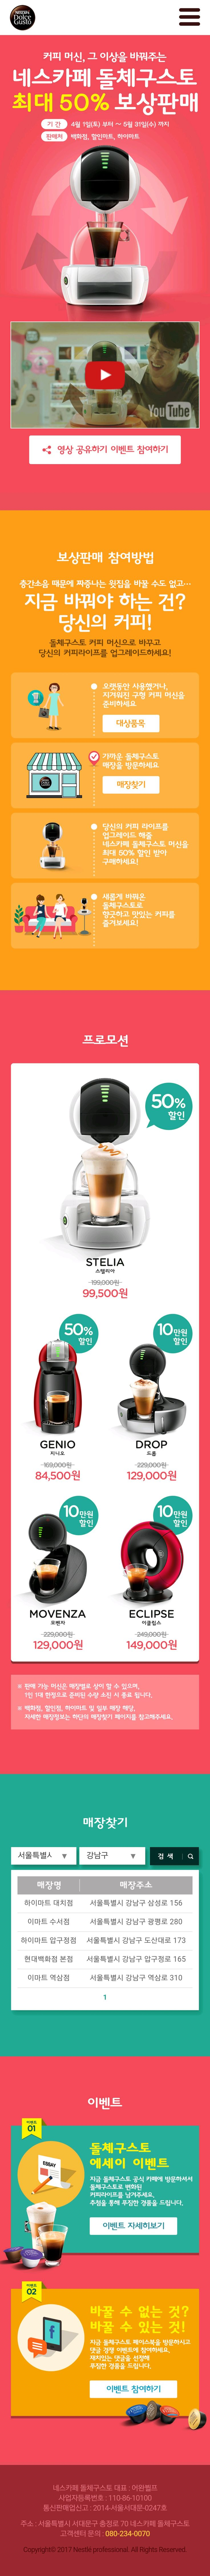 https://event.dolce-gusto.co.kr/events/tradein2017?utm_source=Daum&utm_campaign=2017_tradein_mobile&utm_medium=FocusView